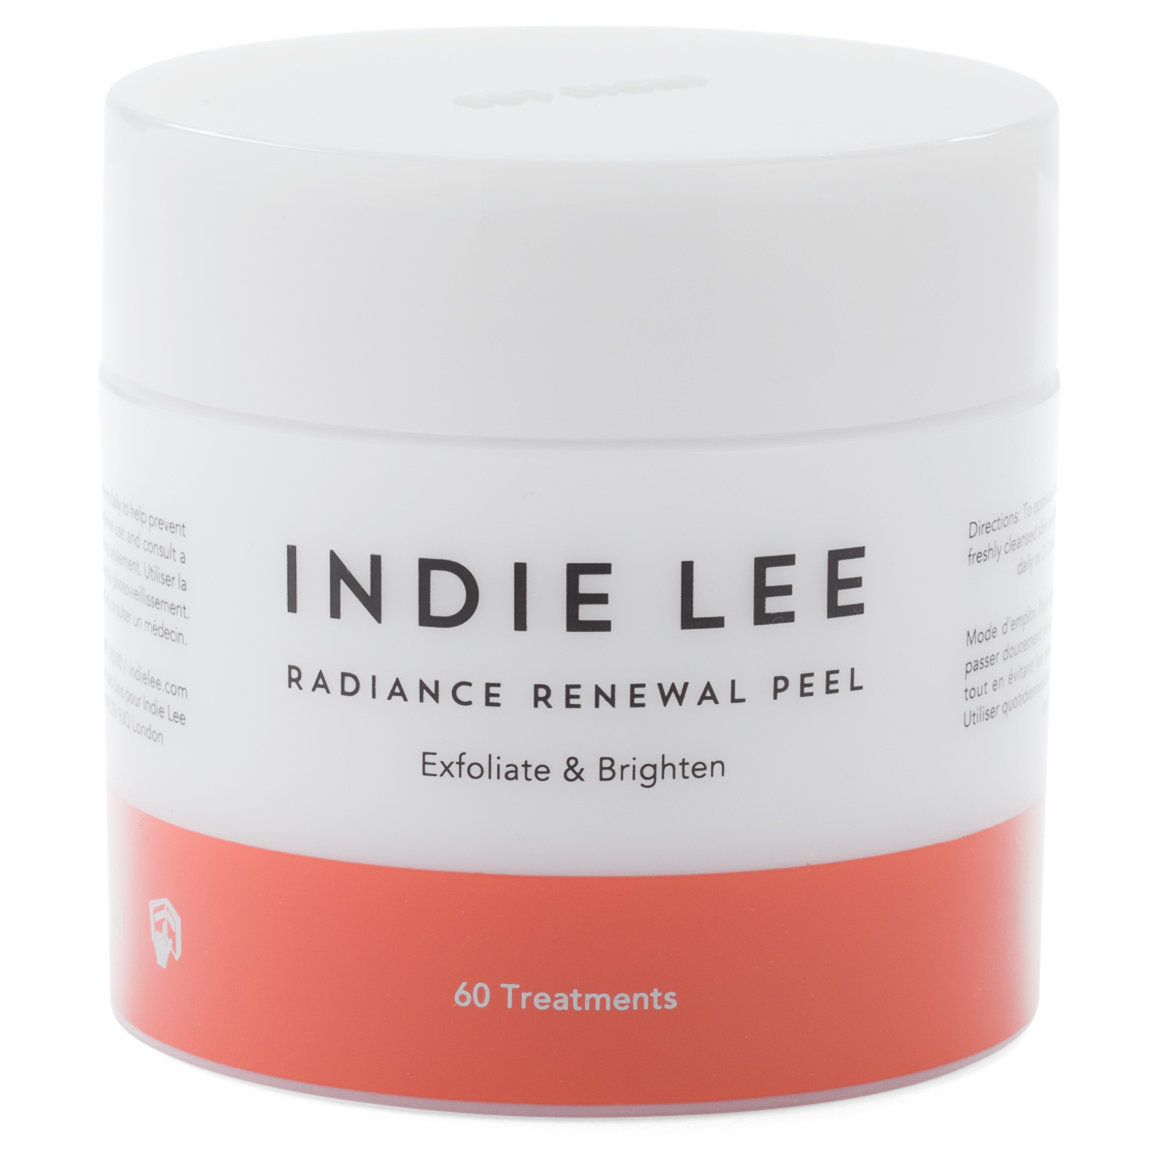 Indie Lee Radiance Renewal Peel product swatch.